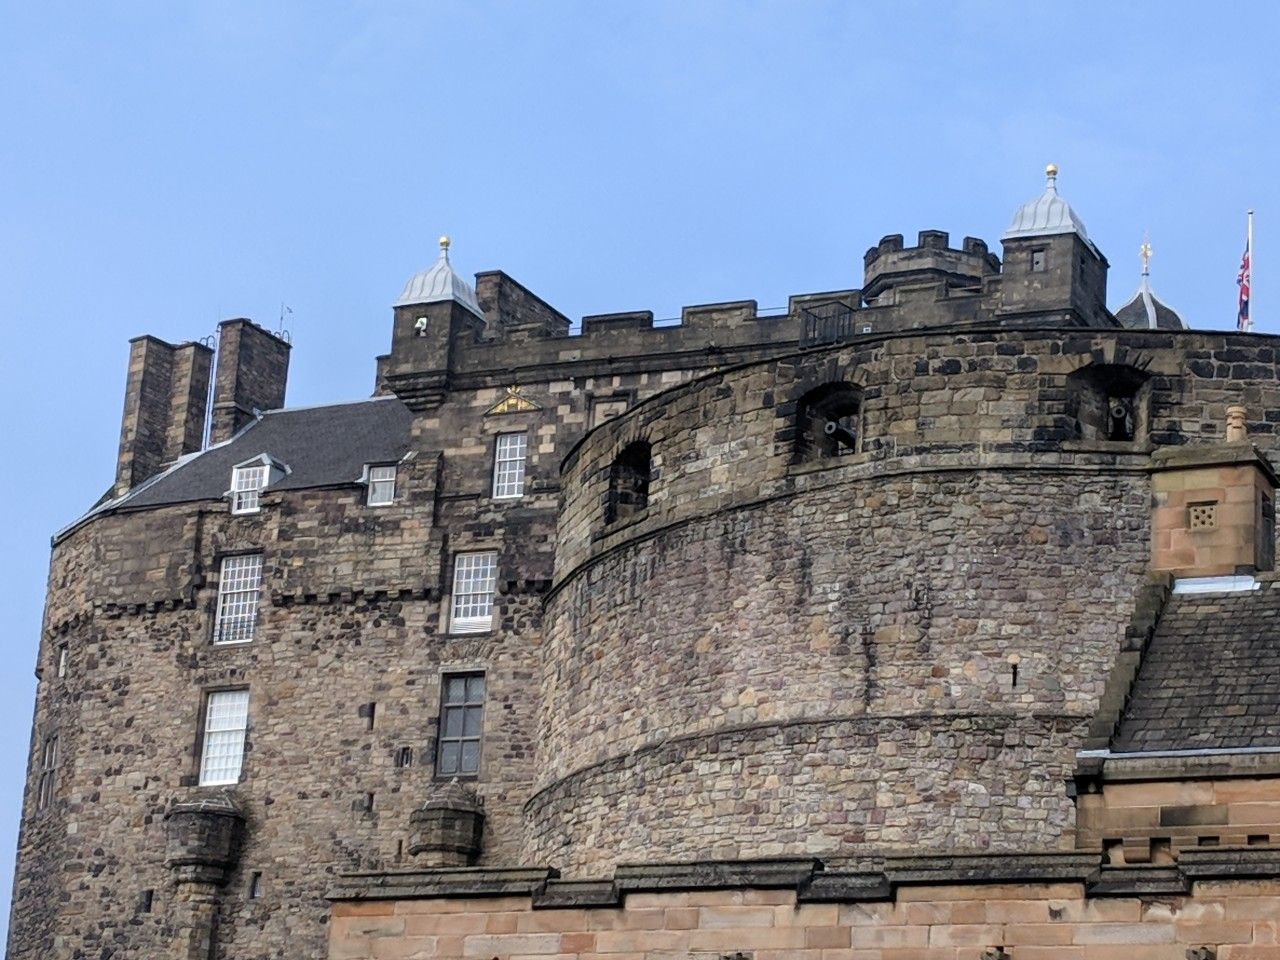 Day 7a: Edinburgh Castle